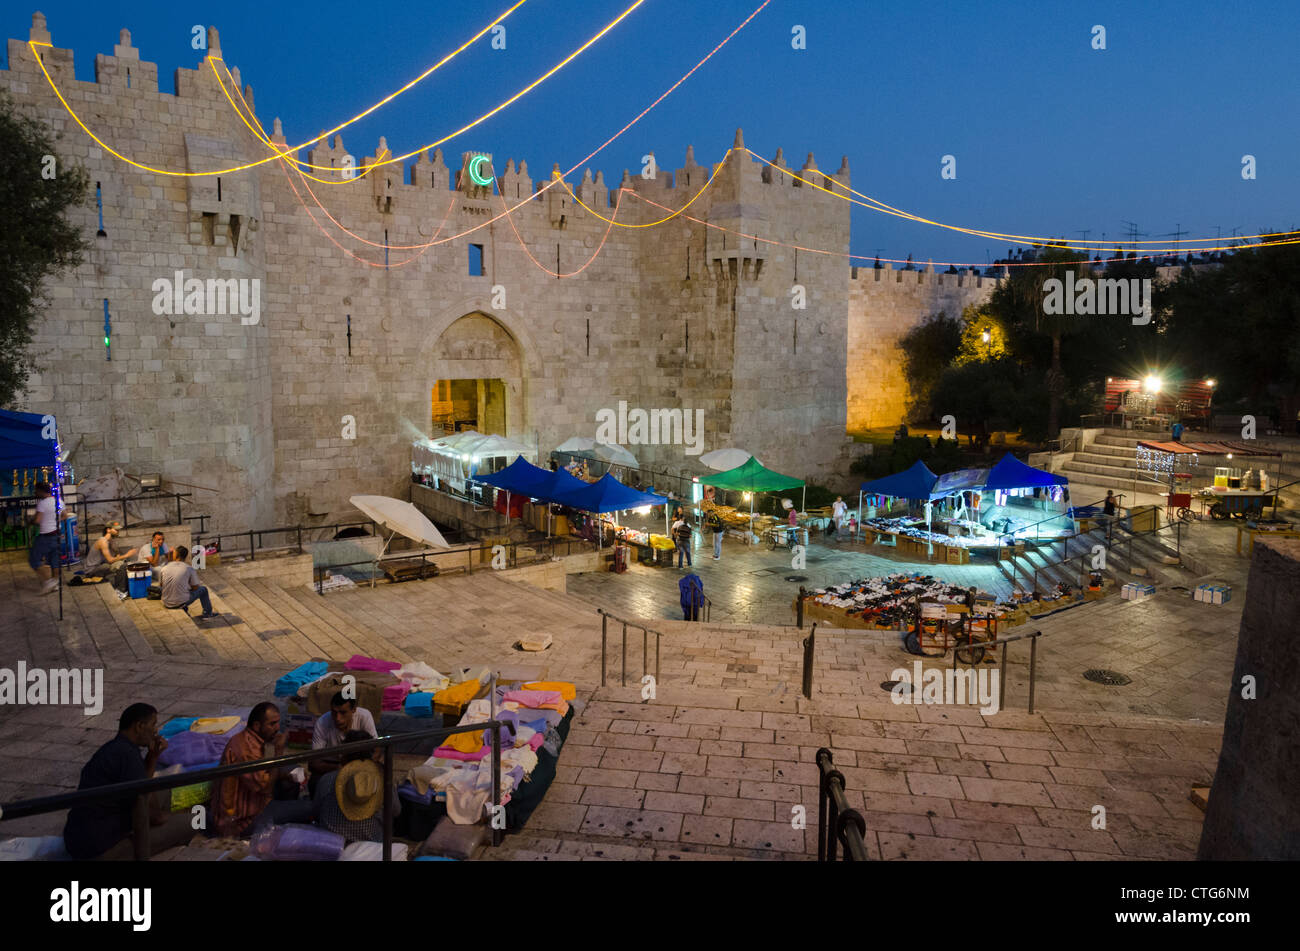 End of first day of Ramadan at Damascus gate inJerusalem. Israel - Stock Image